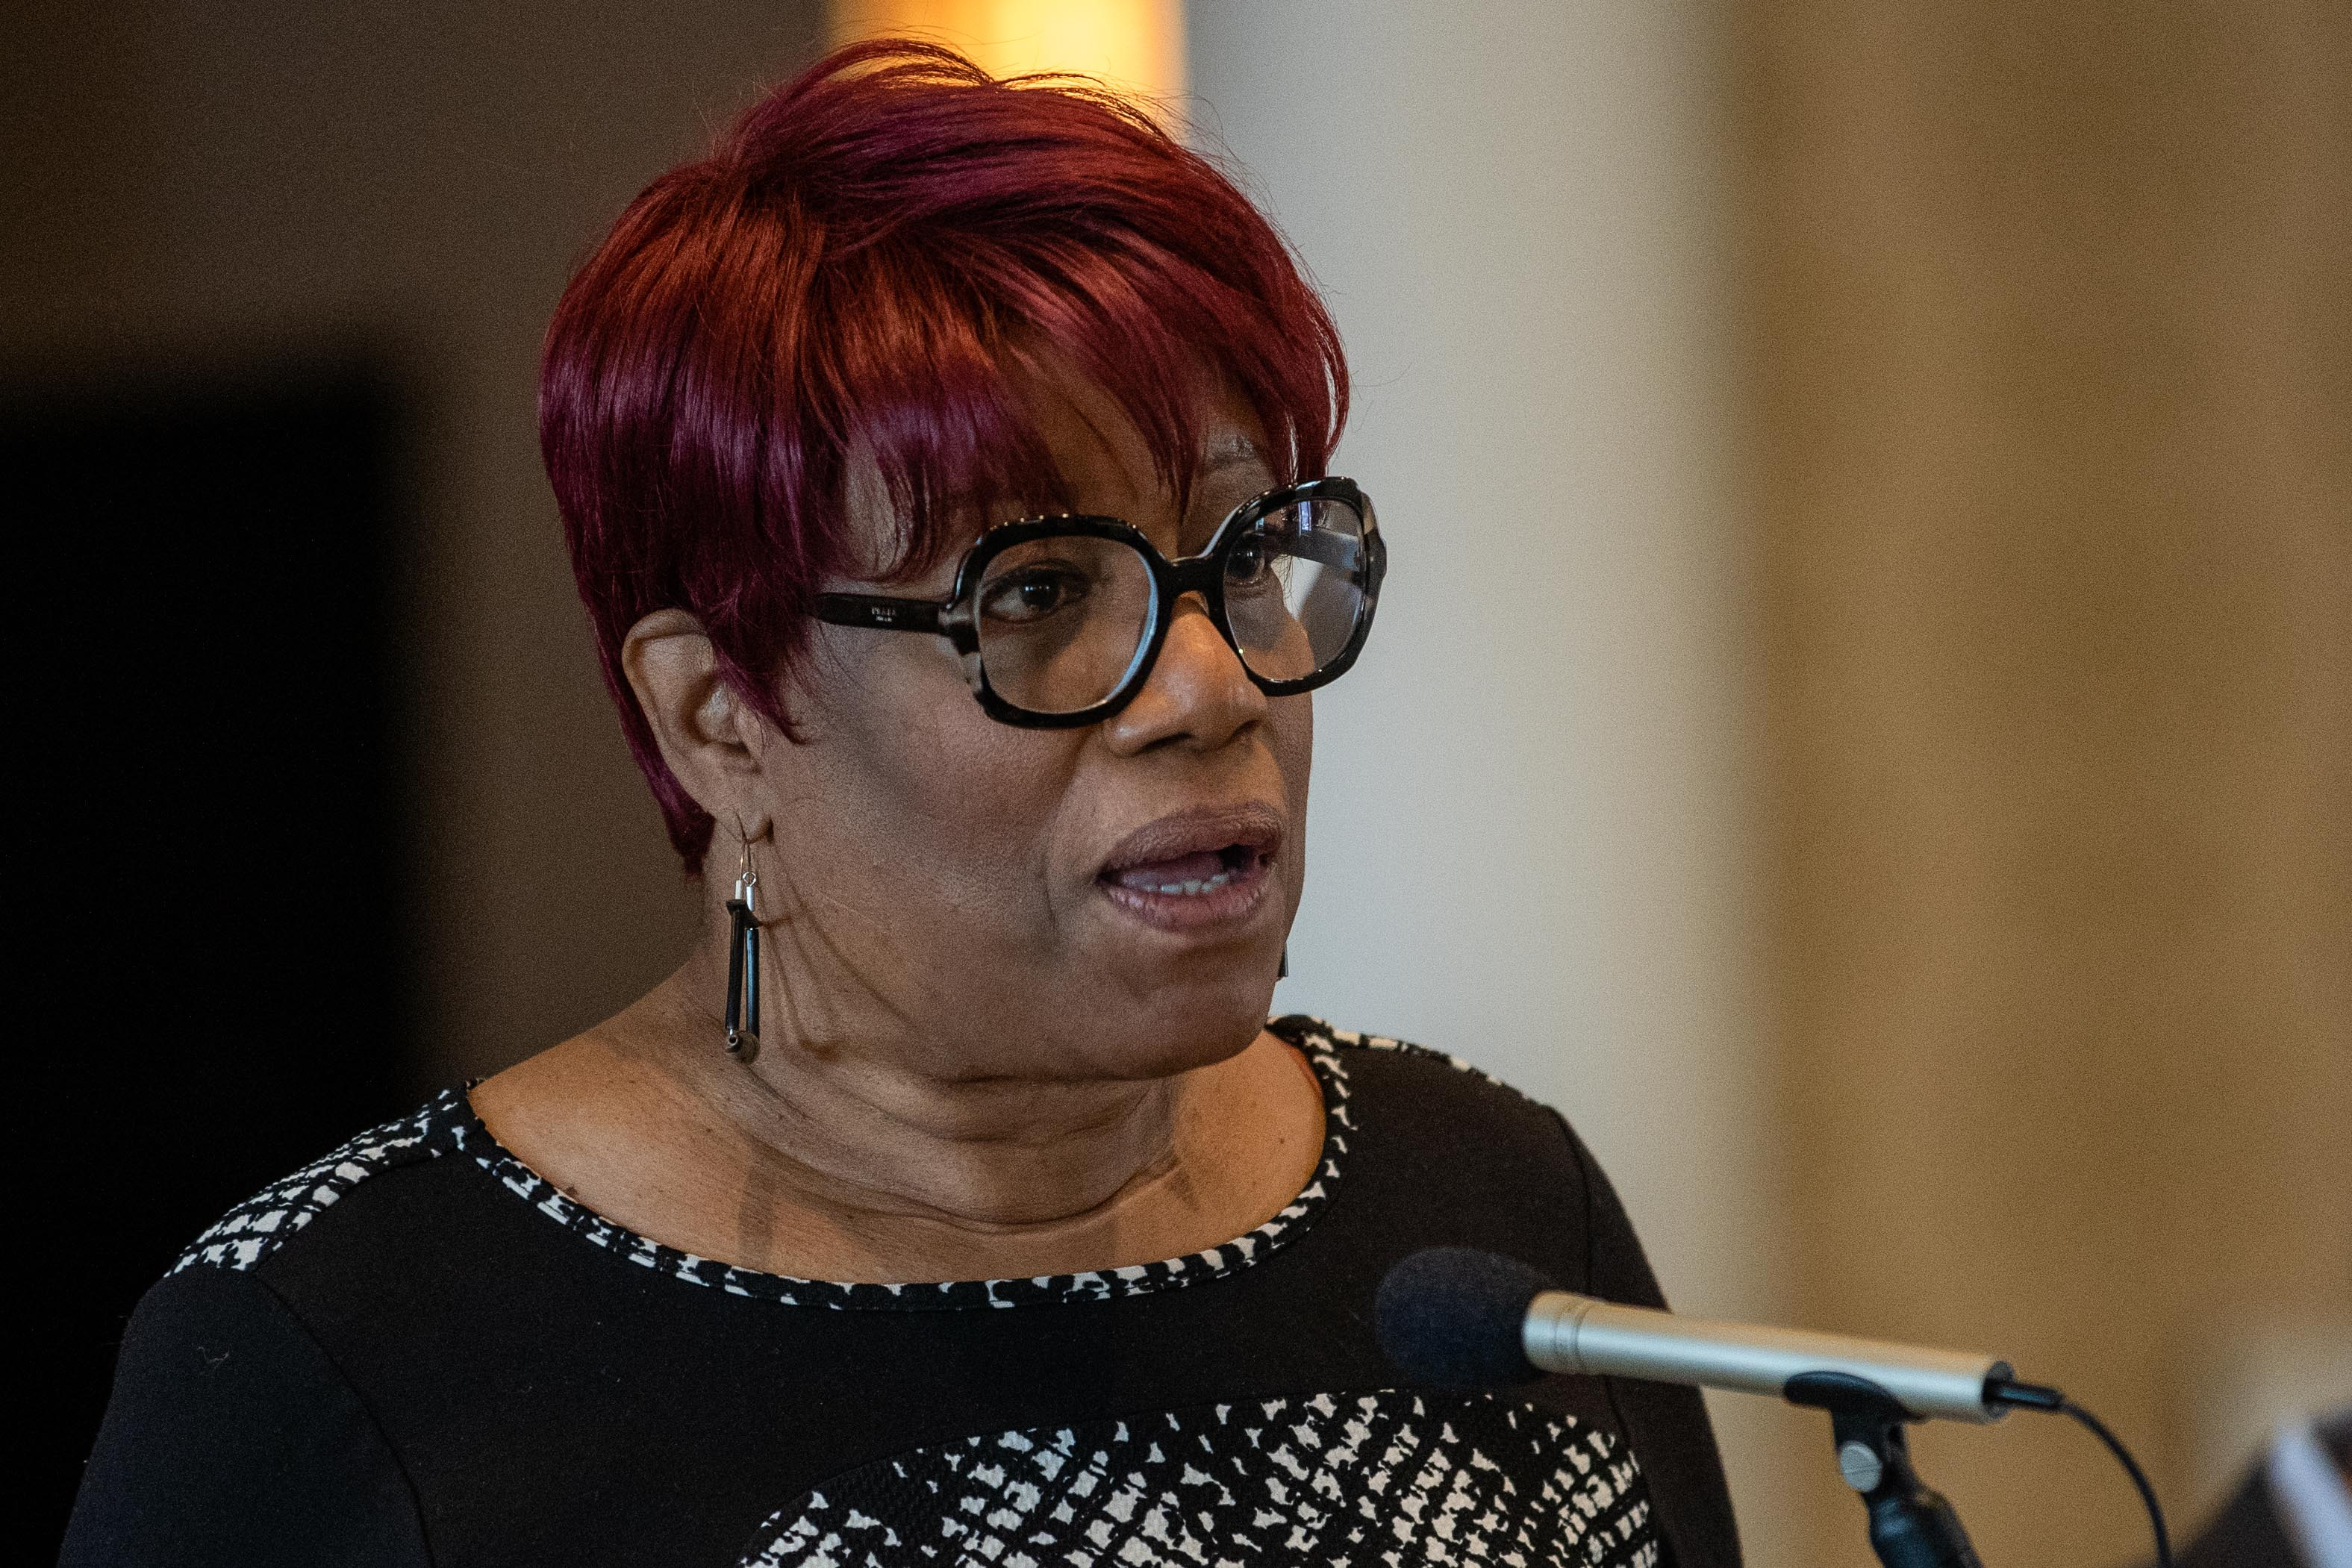 Ald. Pat Dowell (3rd) speaks during a press conference at the Parkway Ballroom in the Bronzeville neighborhood, Thursday morning, Feb. 18, 2021, where elected officials called for the replacement of local Postal Service leadership over mail delays and other service issues.